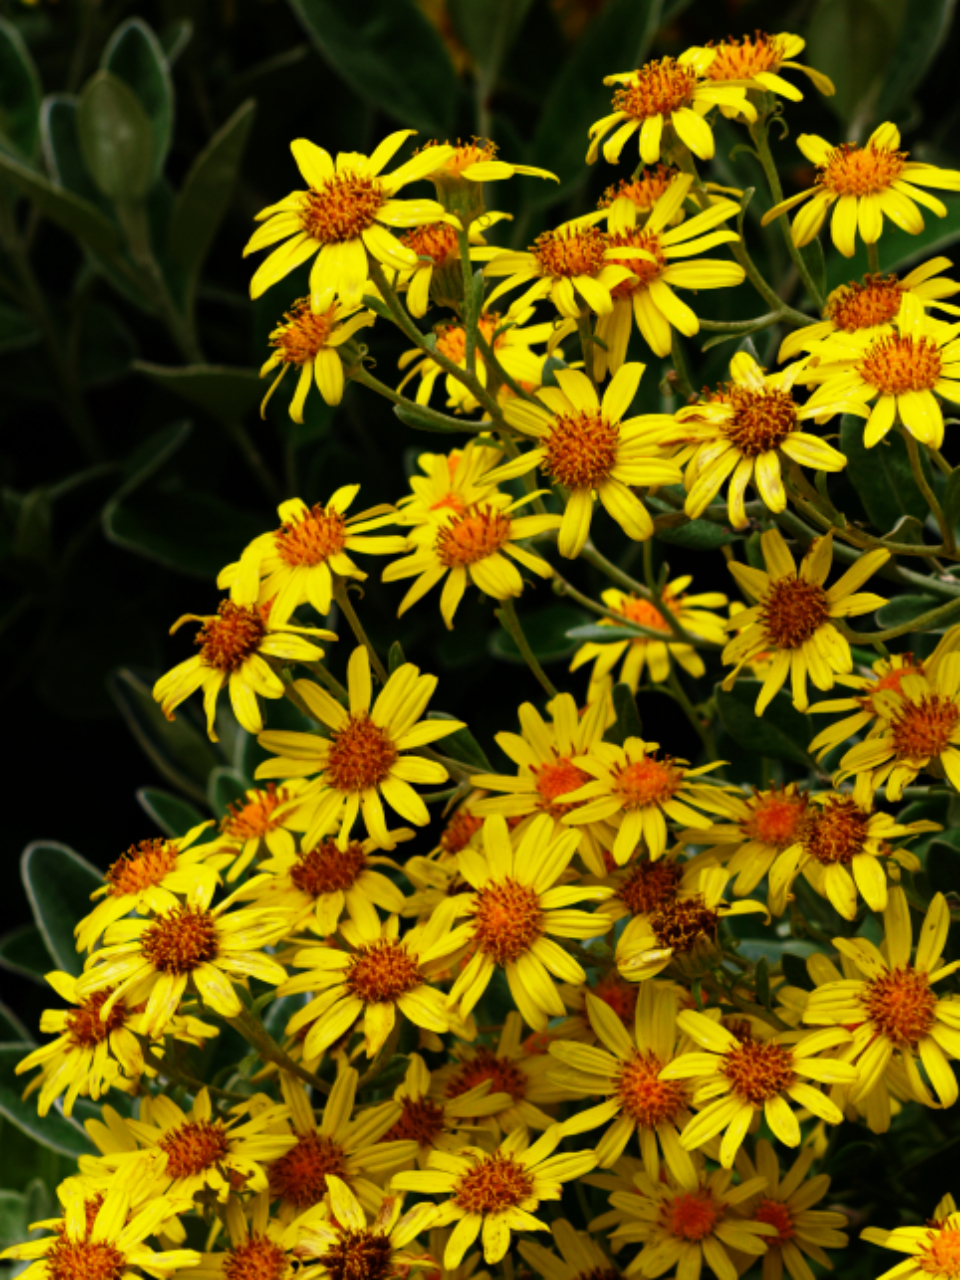 yellow flowers nature outdoors spring summer bloom plants garden wild flora floral daisies